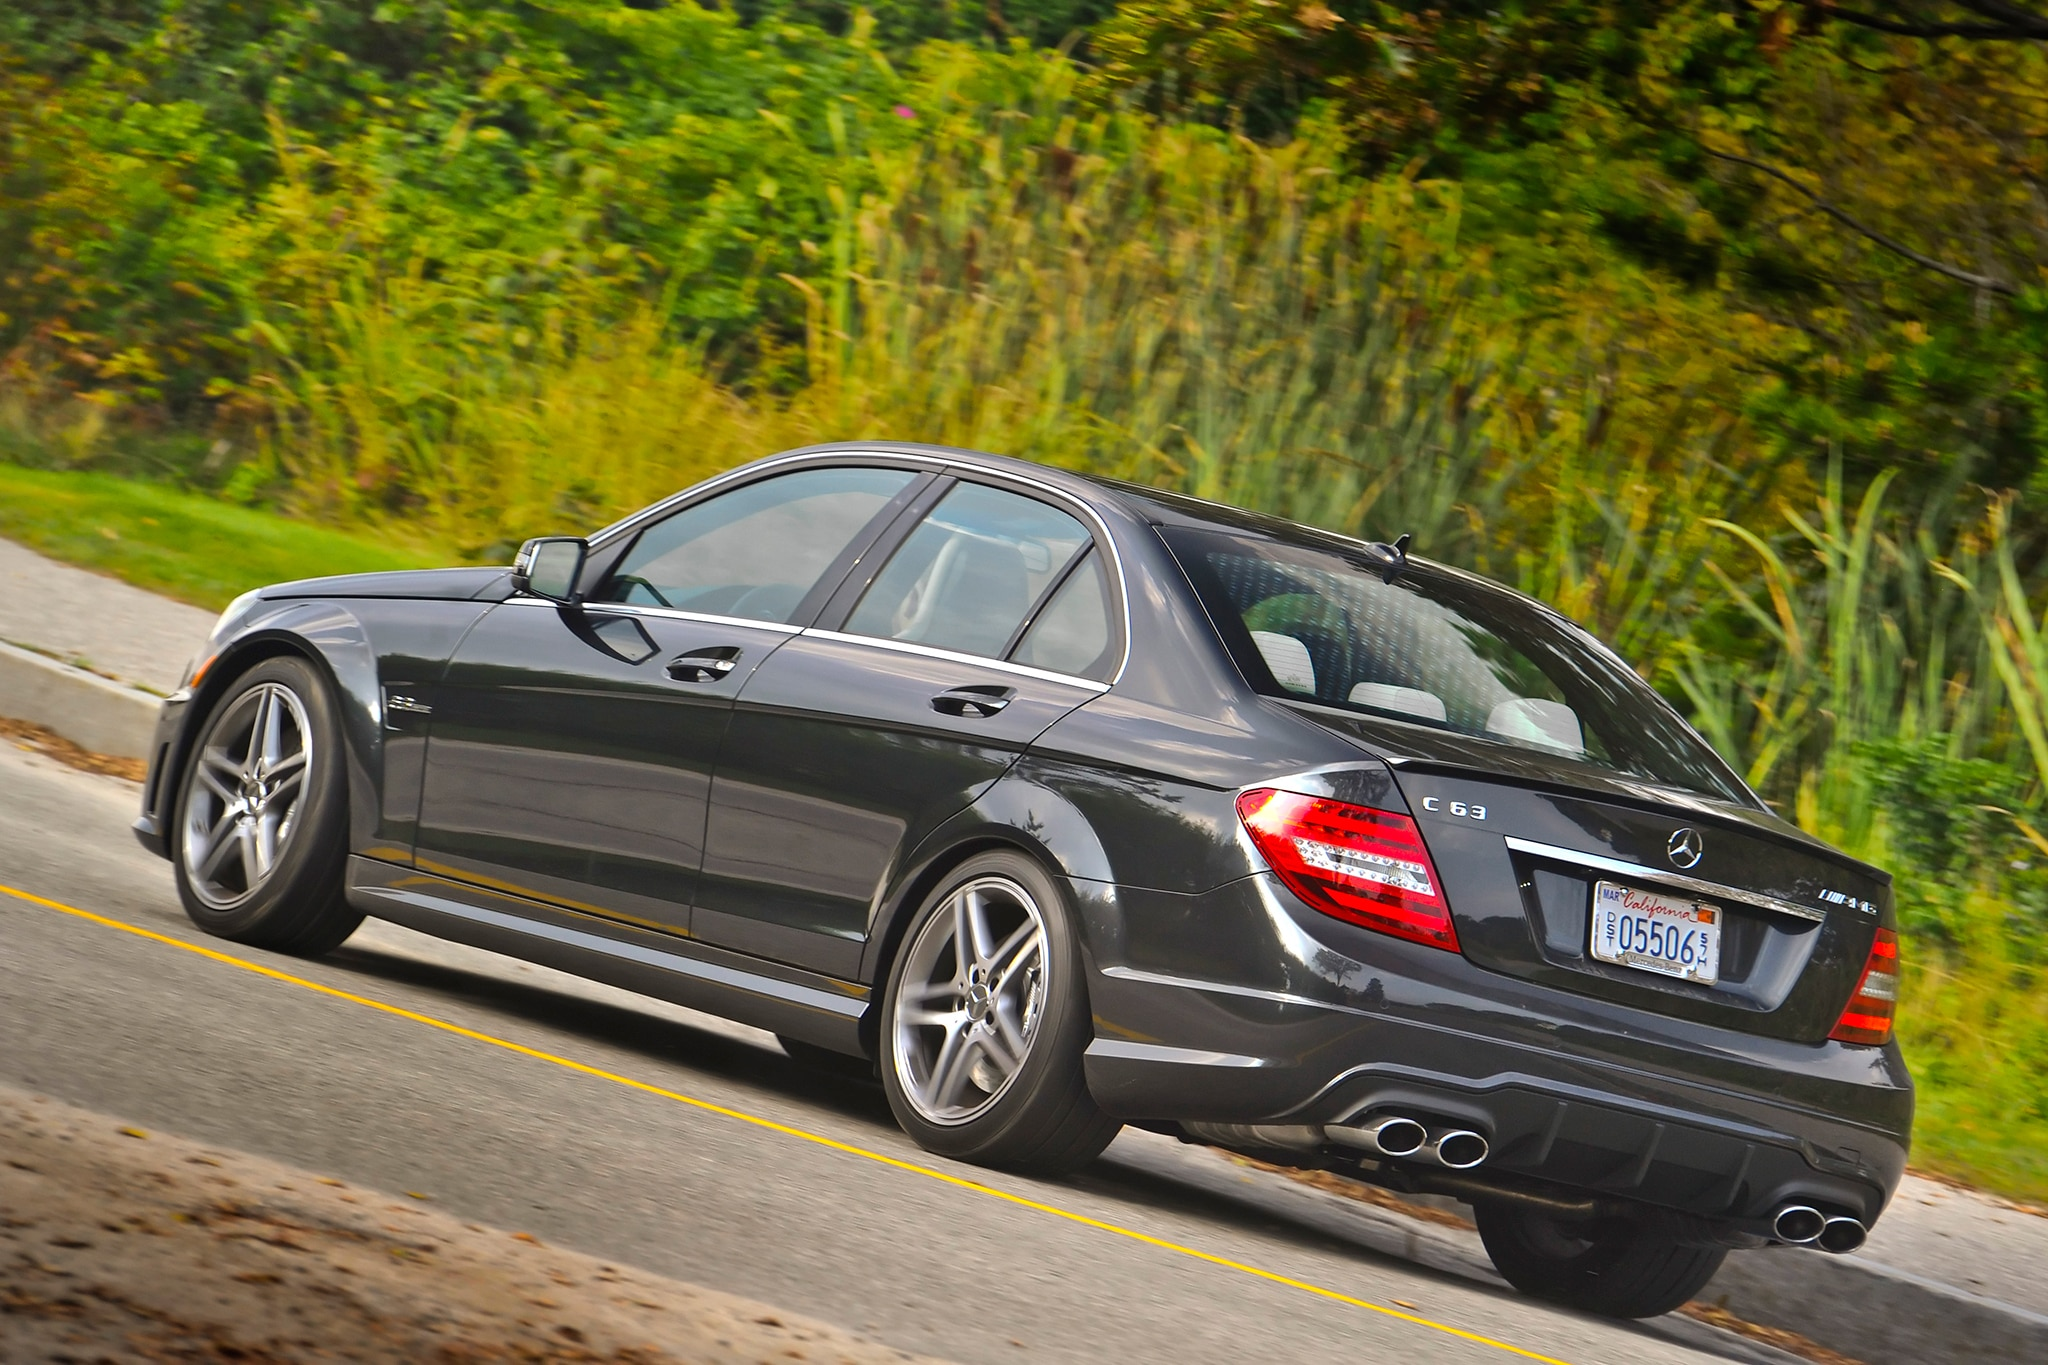 2014 Mercedes Benz C63 AMG Rear Drivers Side